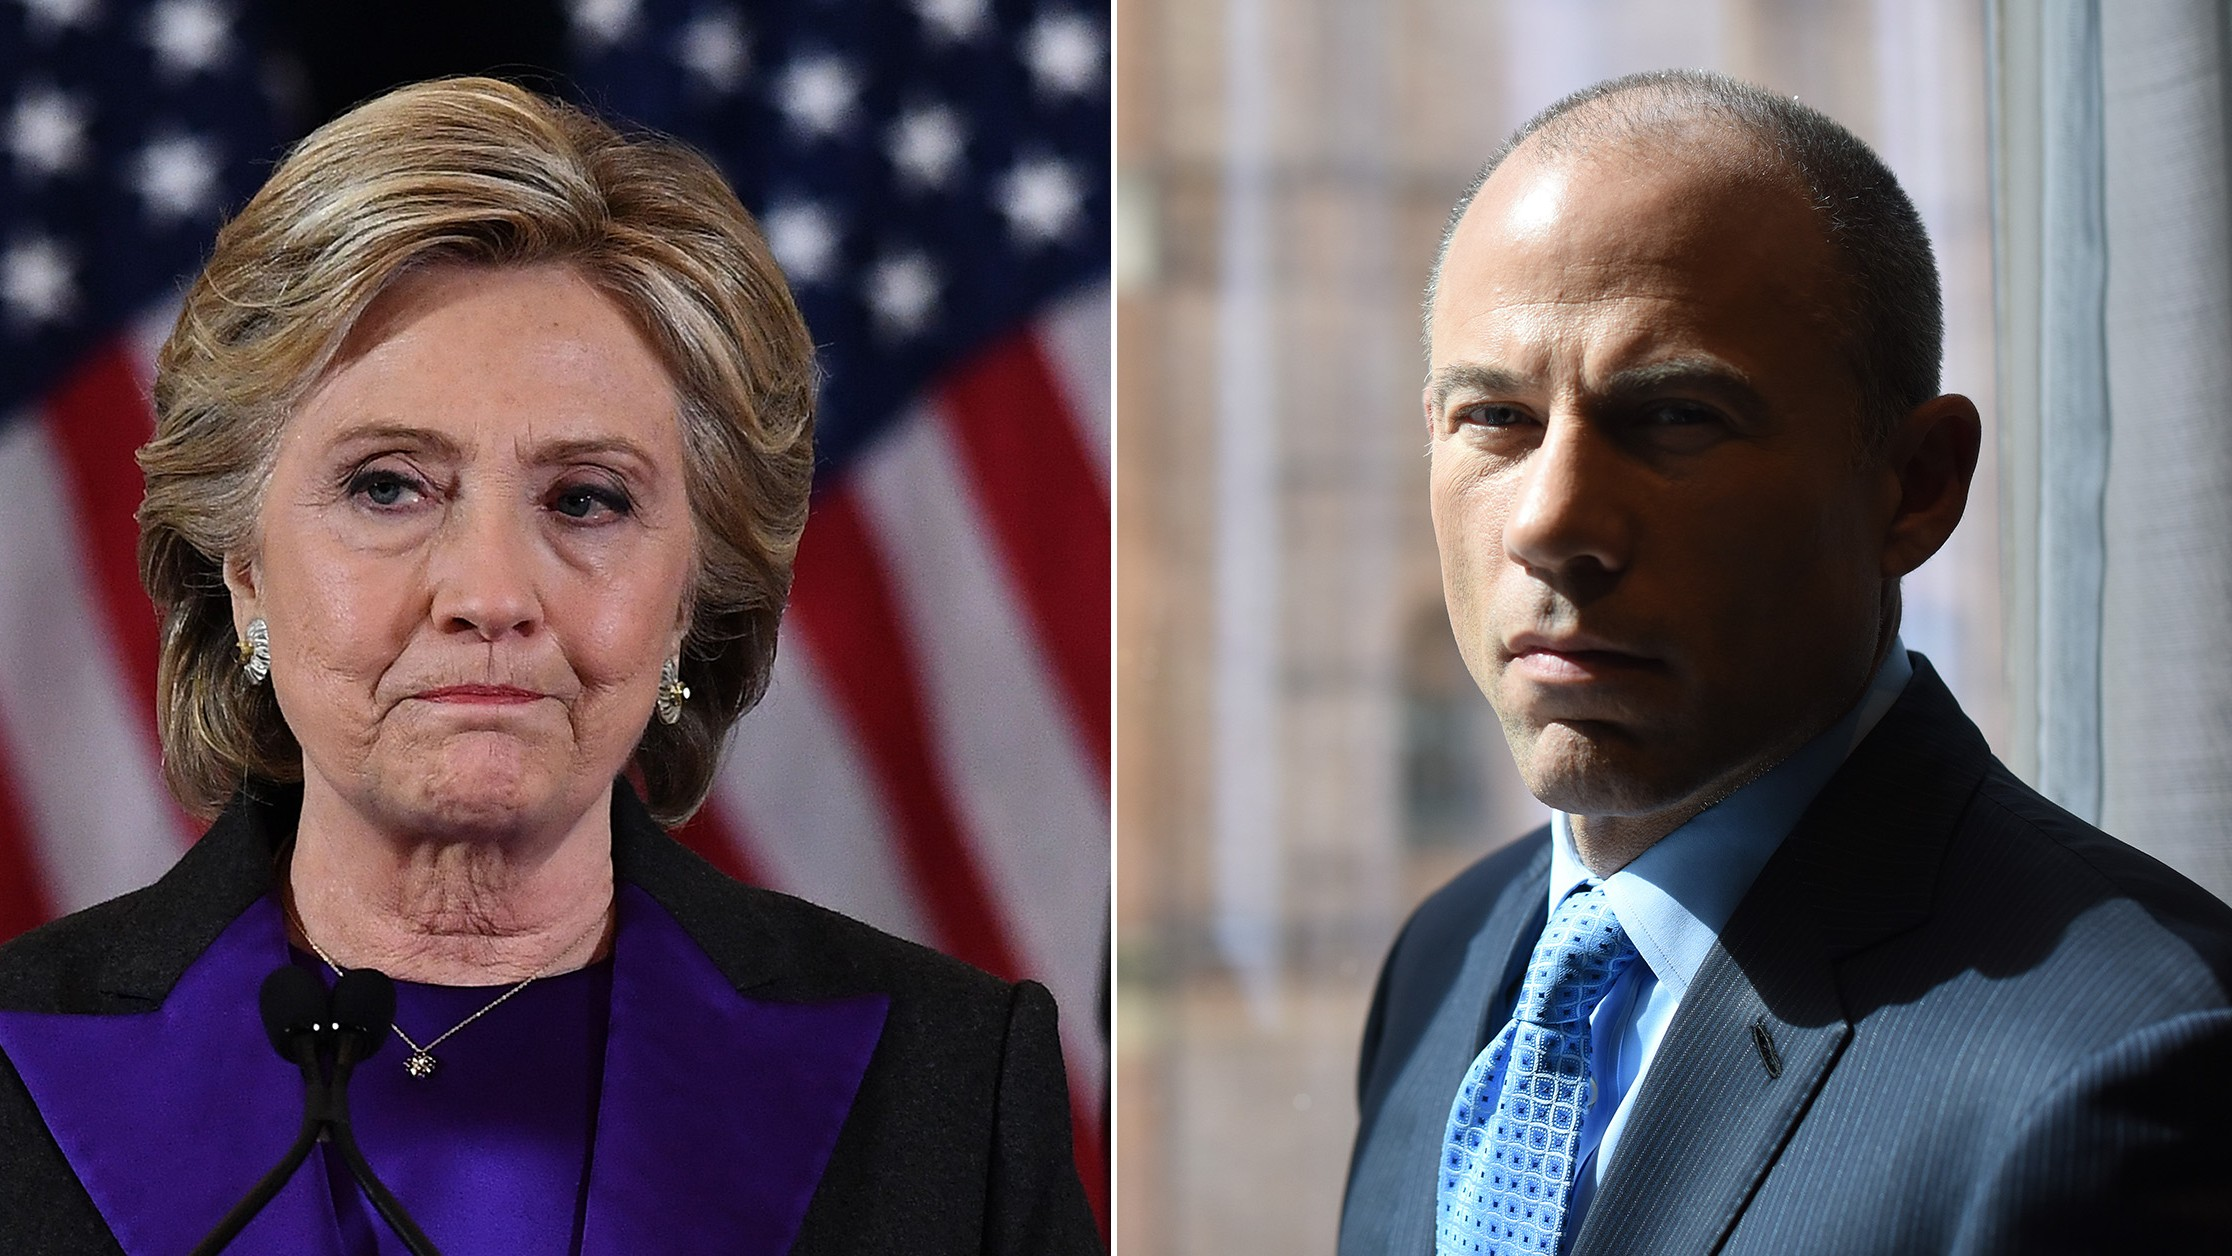 A Guide to the Democrats Who Won't Be President